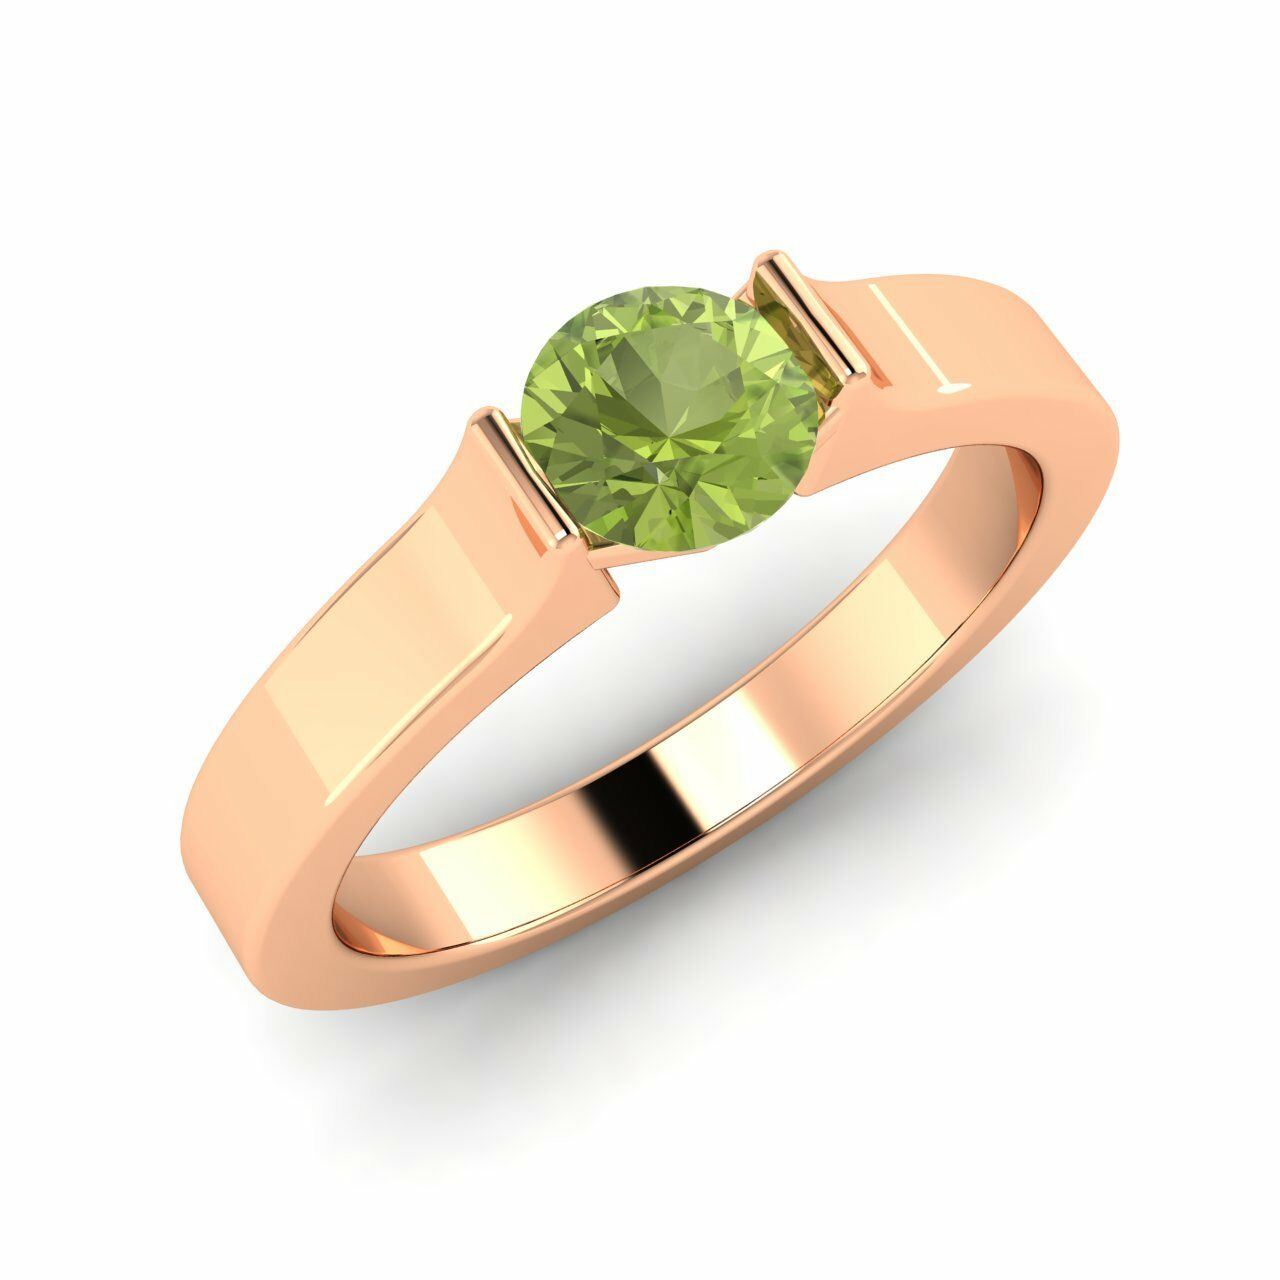 Certified 0.44 Cts Natural Peridot Solitaire Engagement Ring In 14K pink gold